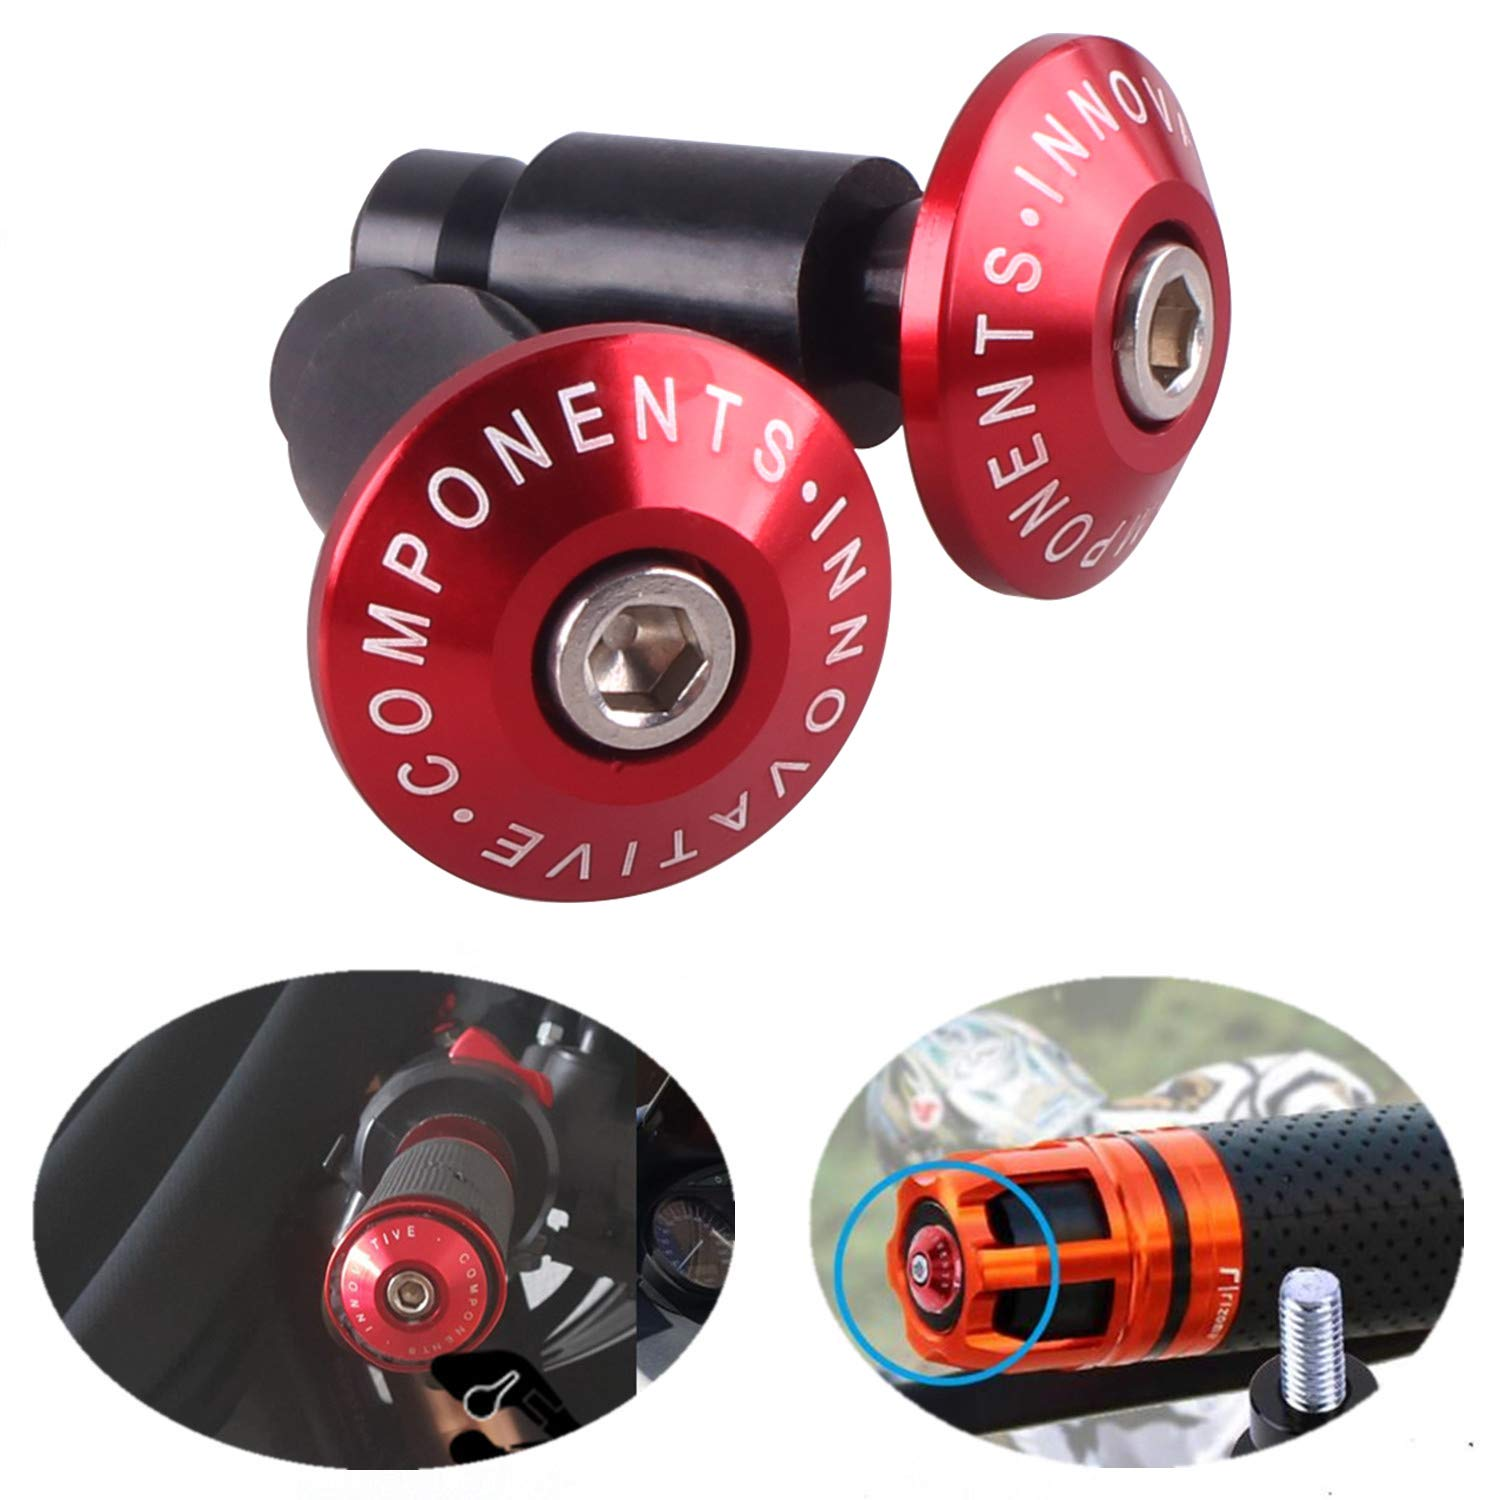 1 Pair,Red Heart Horse 7//8 Motorbike Bar Ends,Universal Motorcycle CNC Handle Bar Cap Cover Grips End Plug